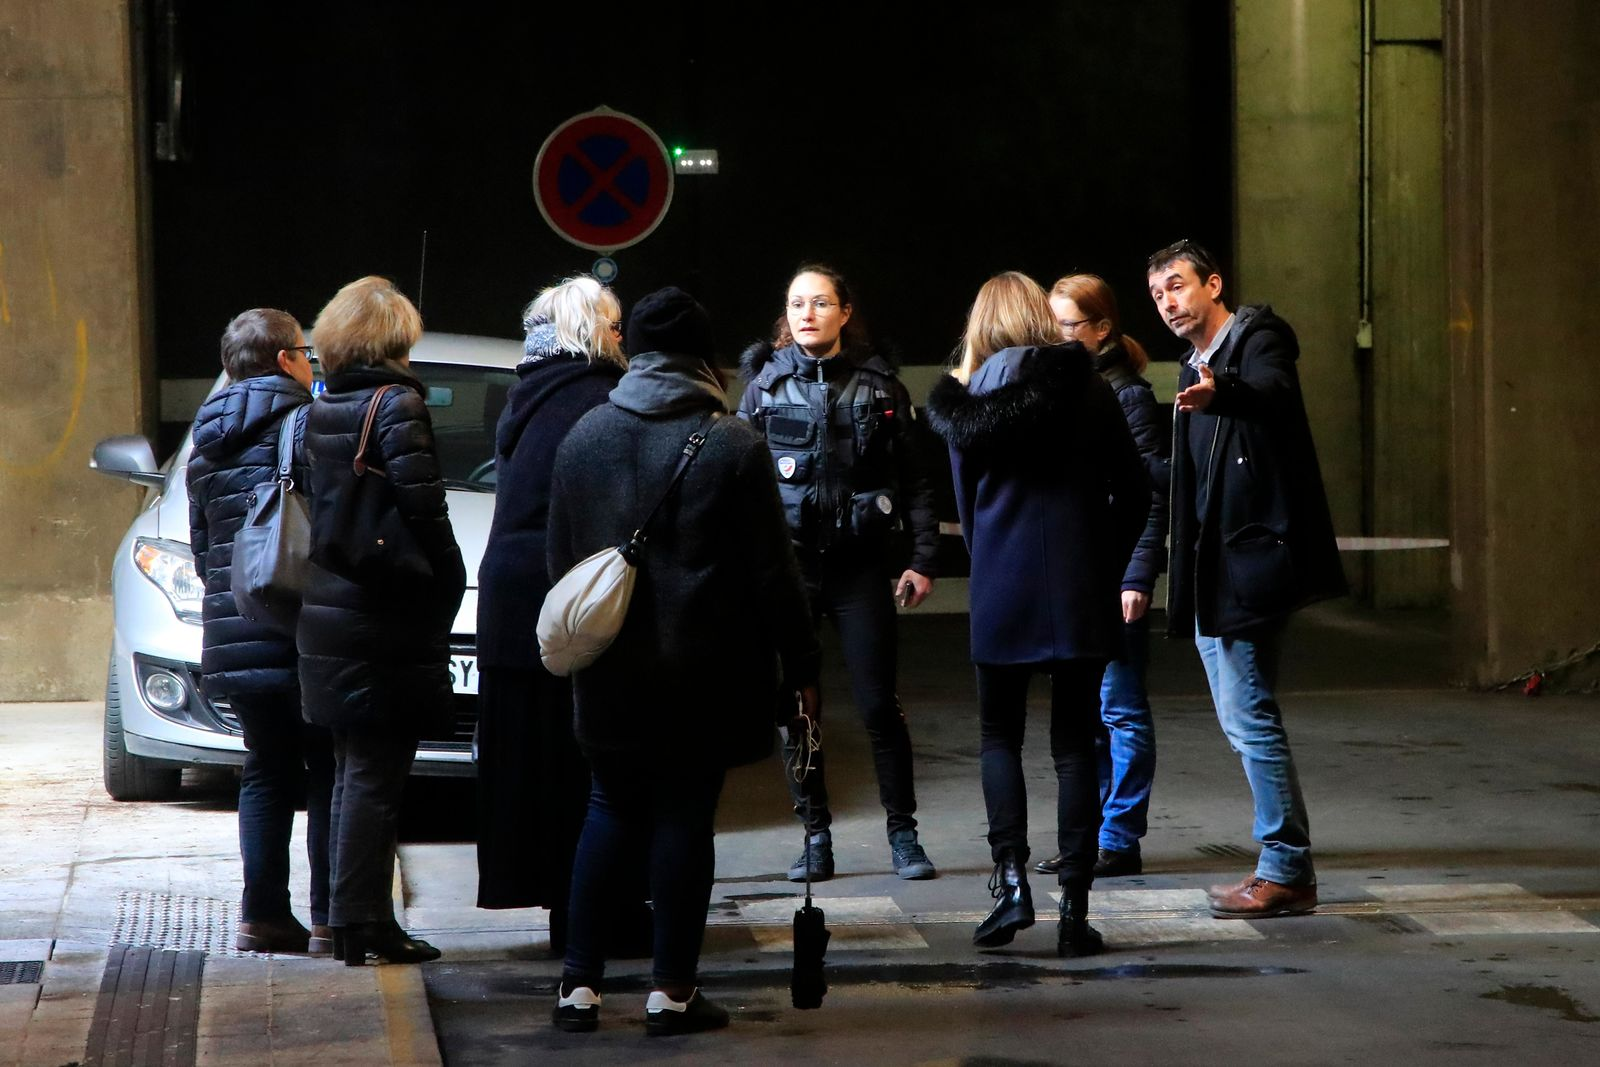 Investigative police officers discuss in a tunnel under Le Defense business district after a man threatened officers Friday, Dec.13, 2019 in Paris.{ } (AP Photo/Michel Euler)